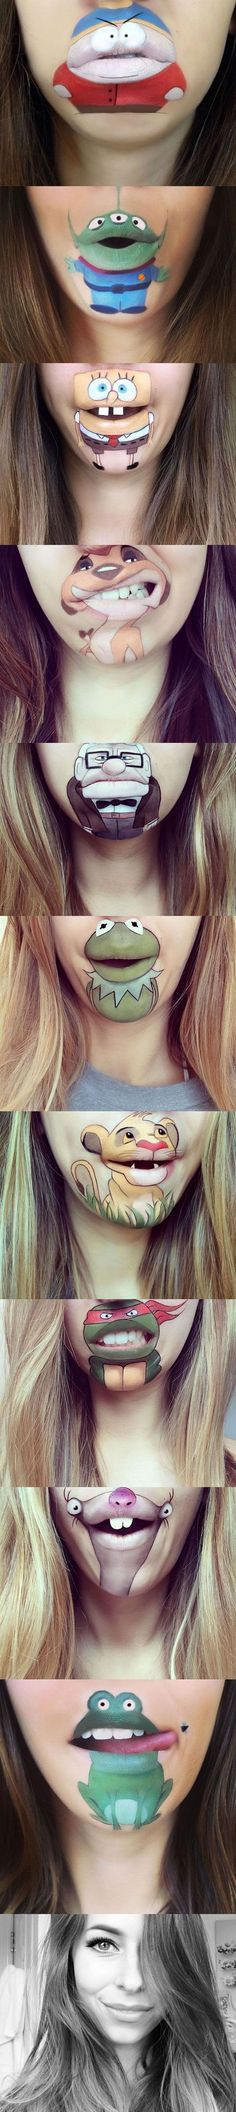 Pinterest: @ ndeyepins – Awesome Lip Makeup